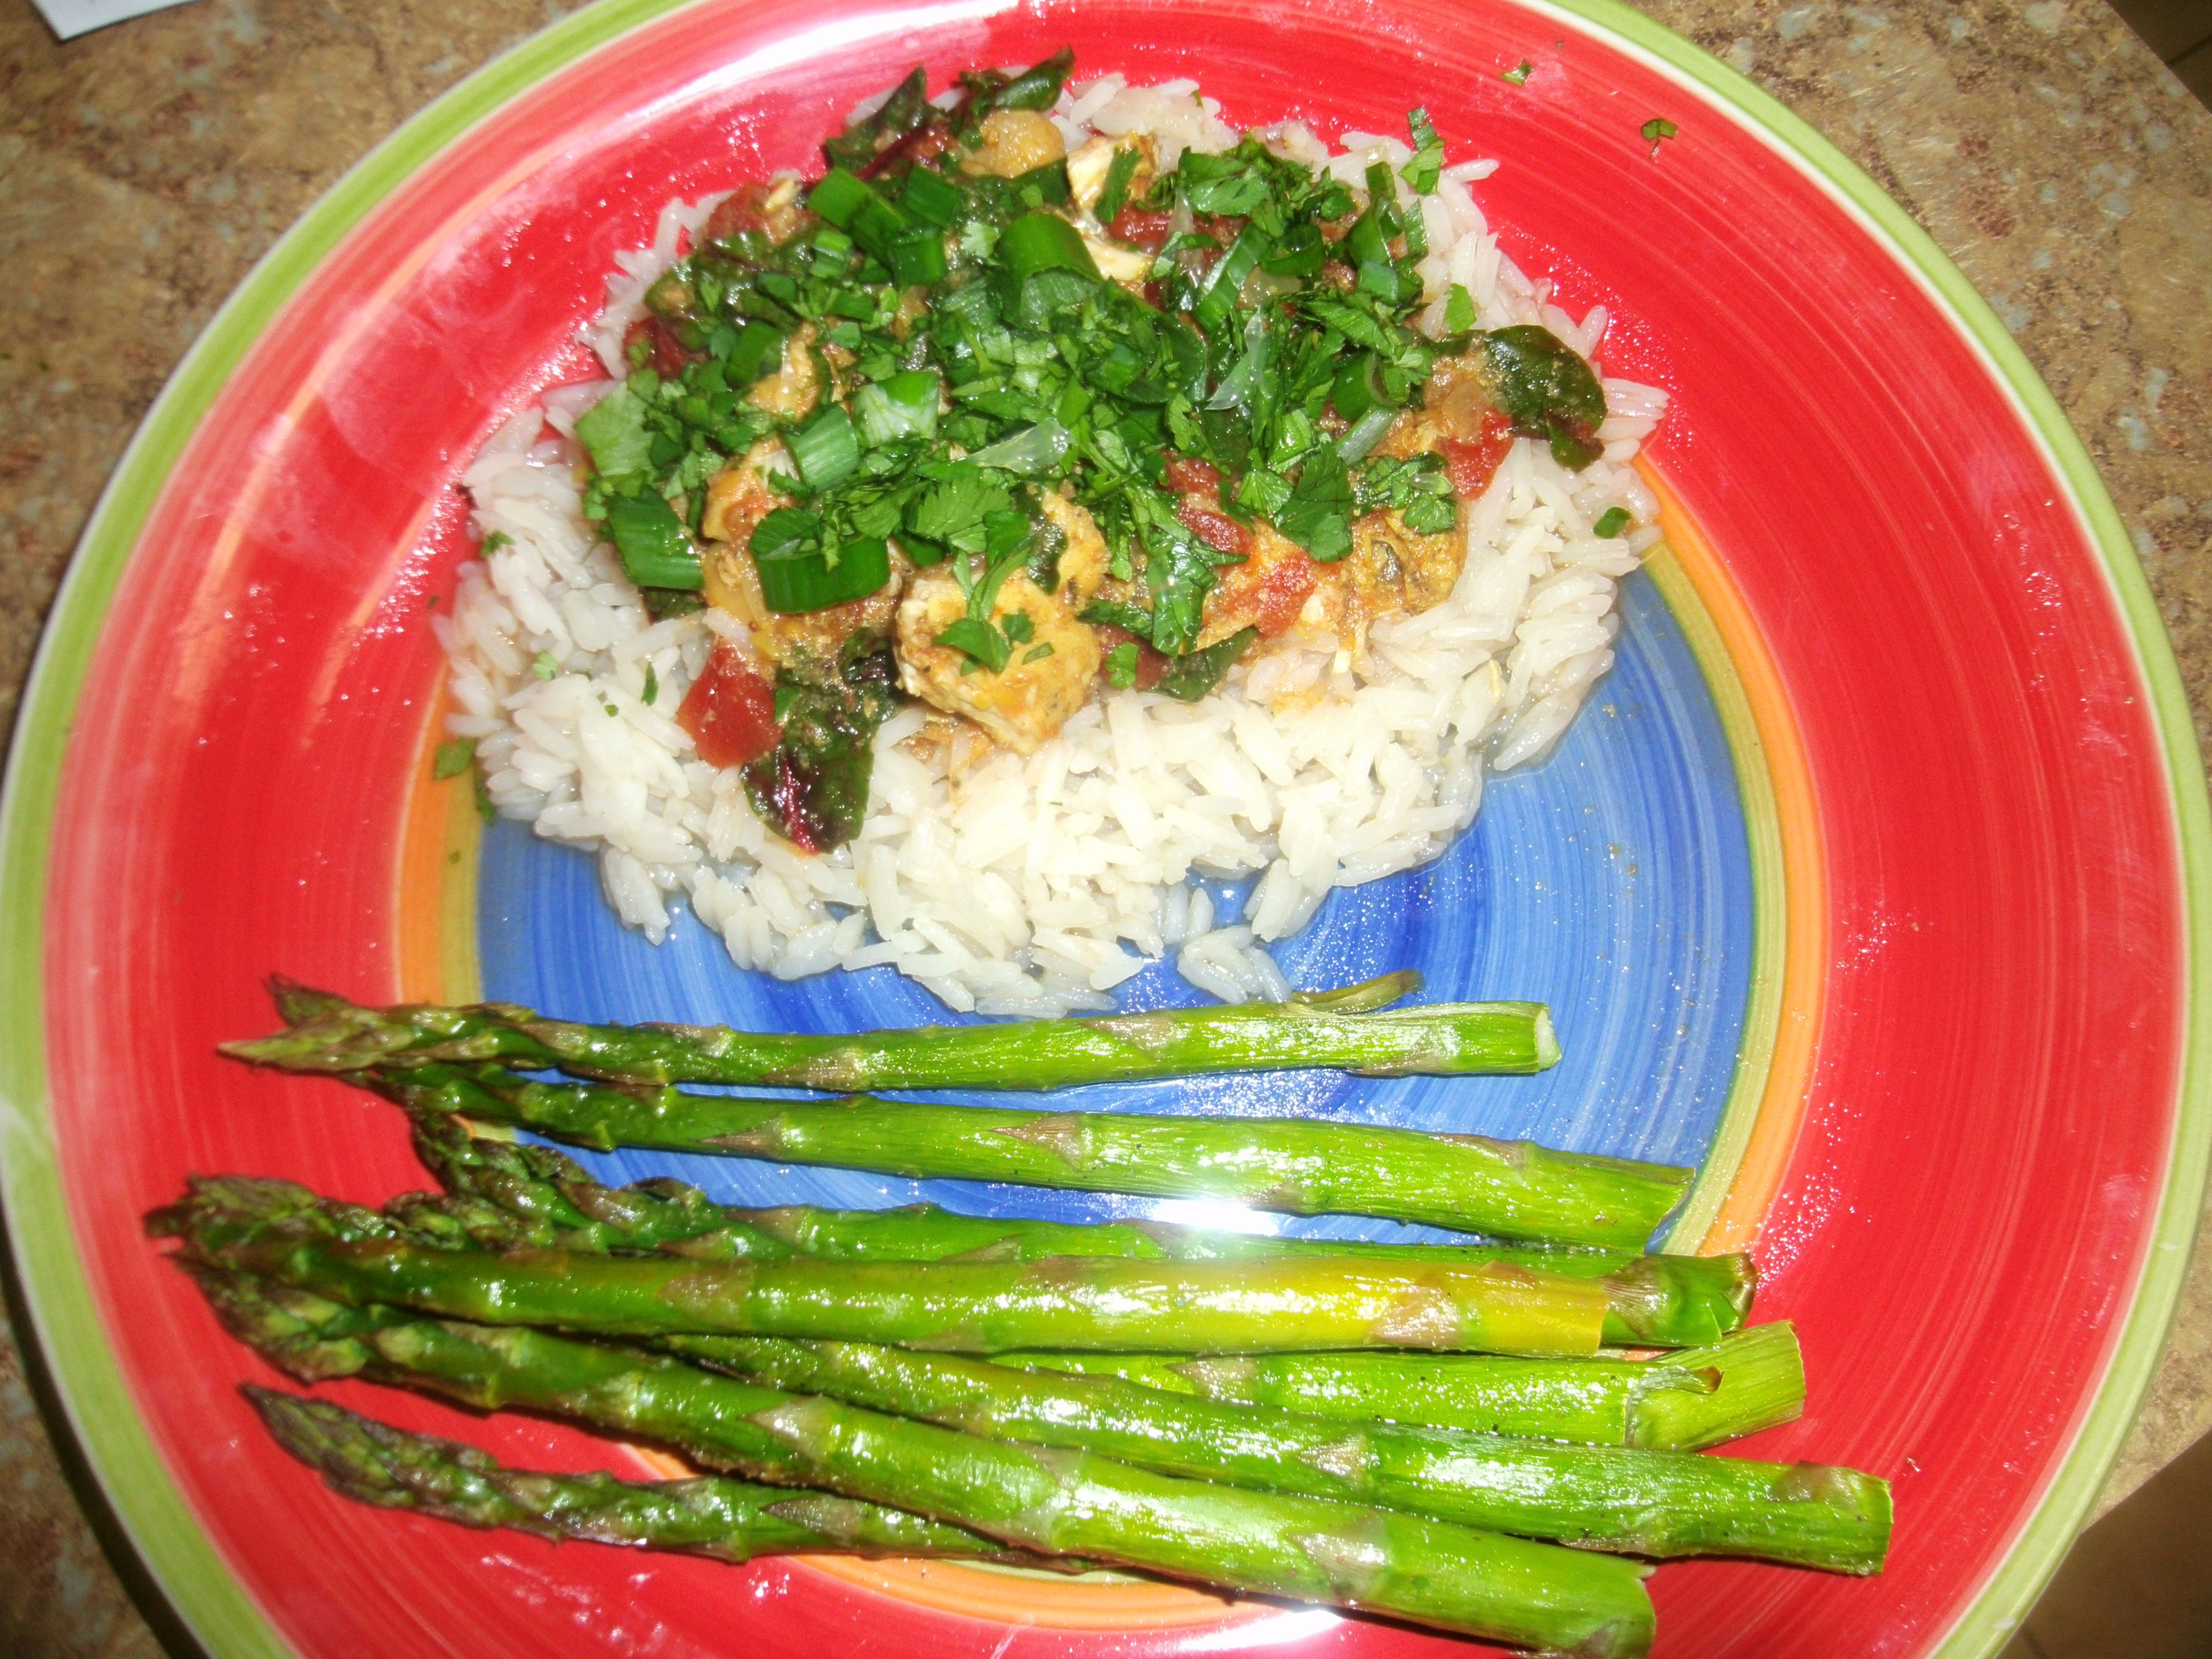 Pin by Jamie Chung on Foods! | Pinterest